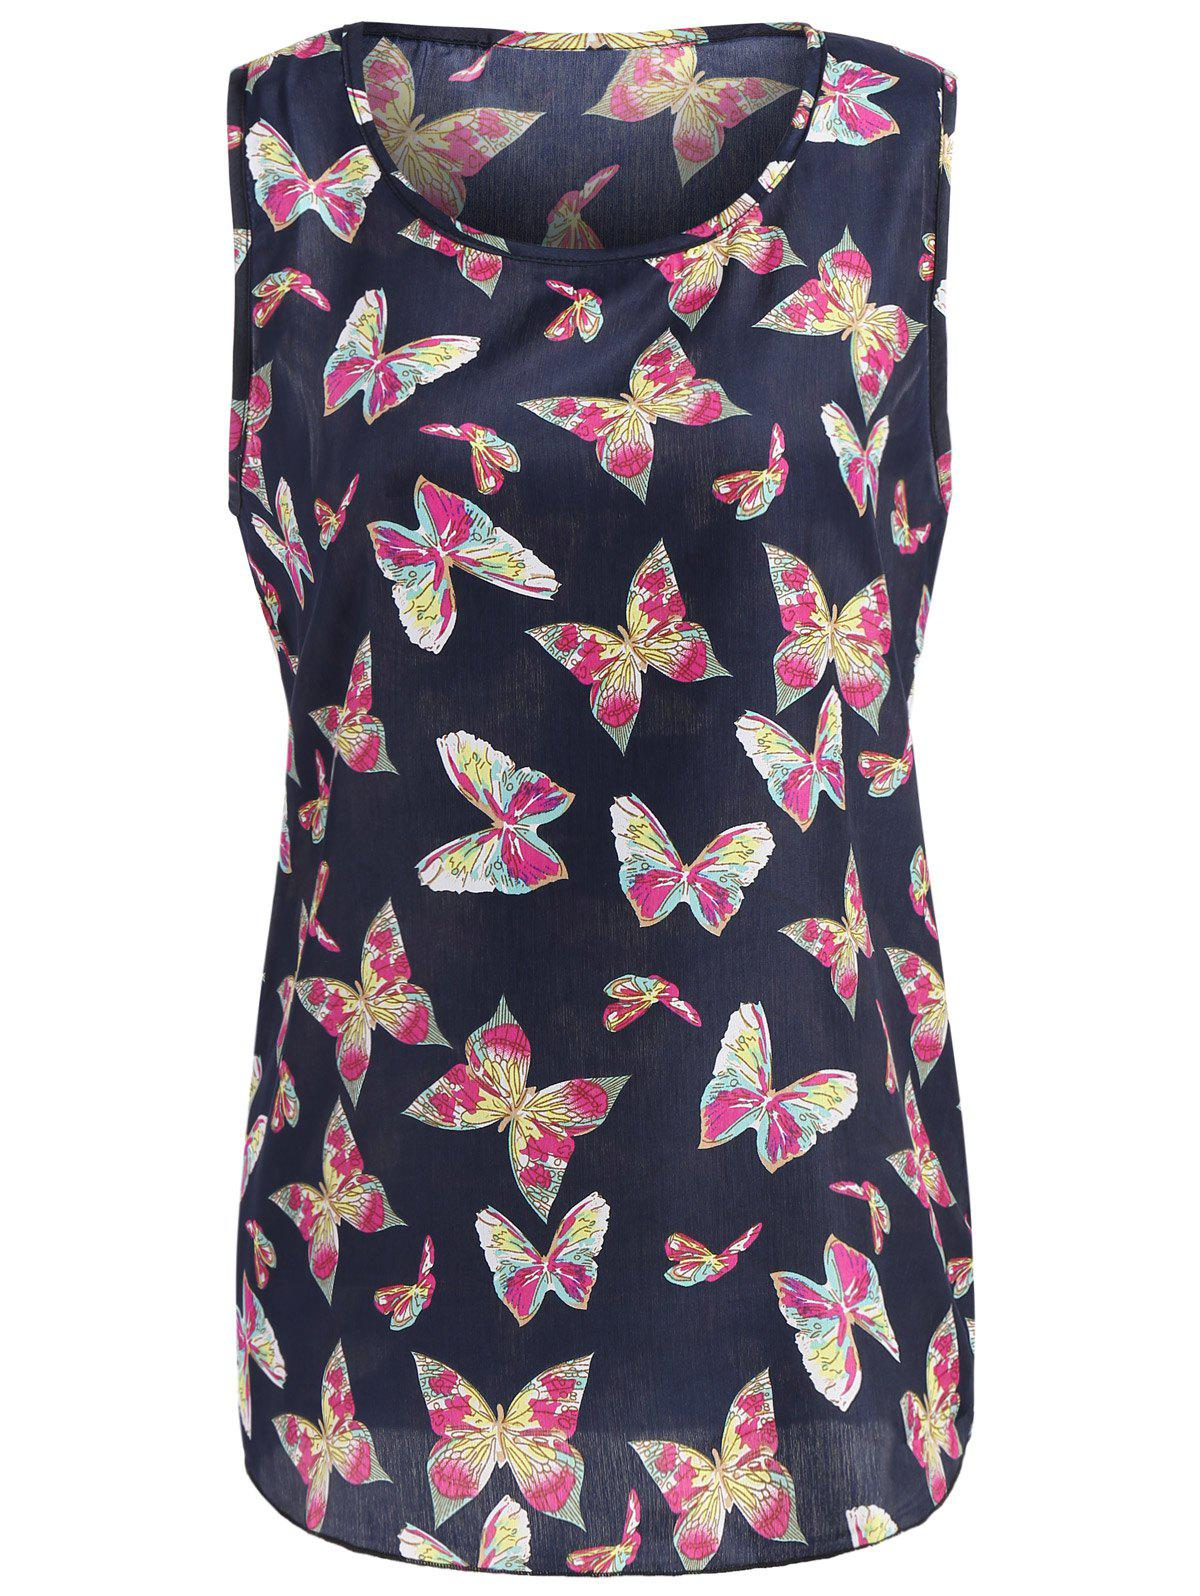 Scoop Neck Butterfly Print Chiffon Top